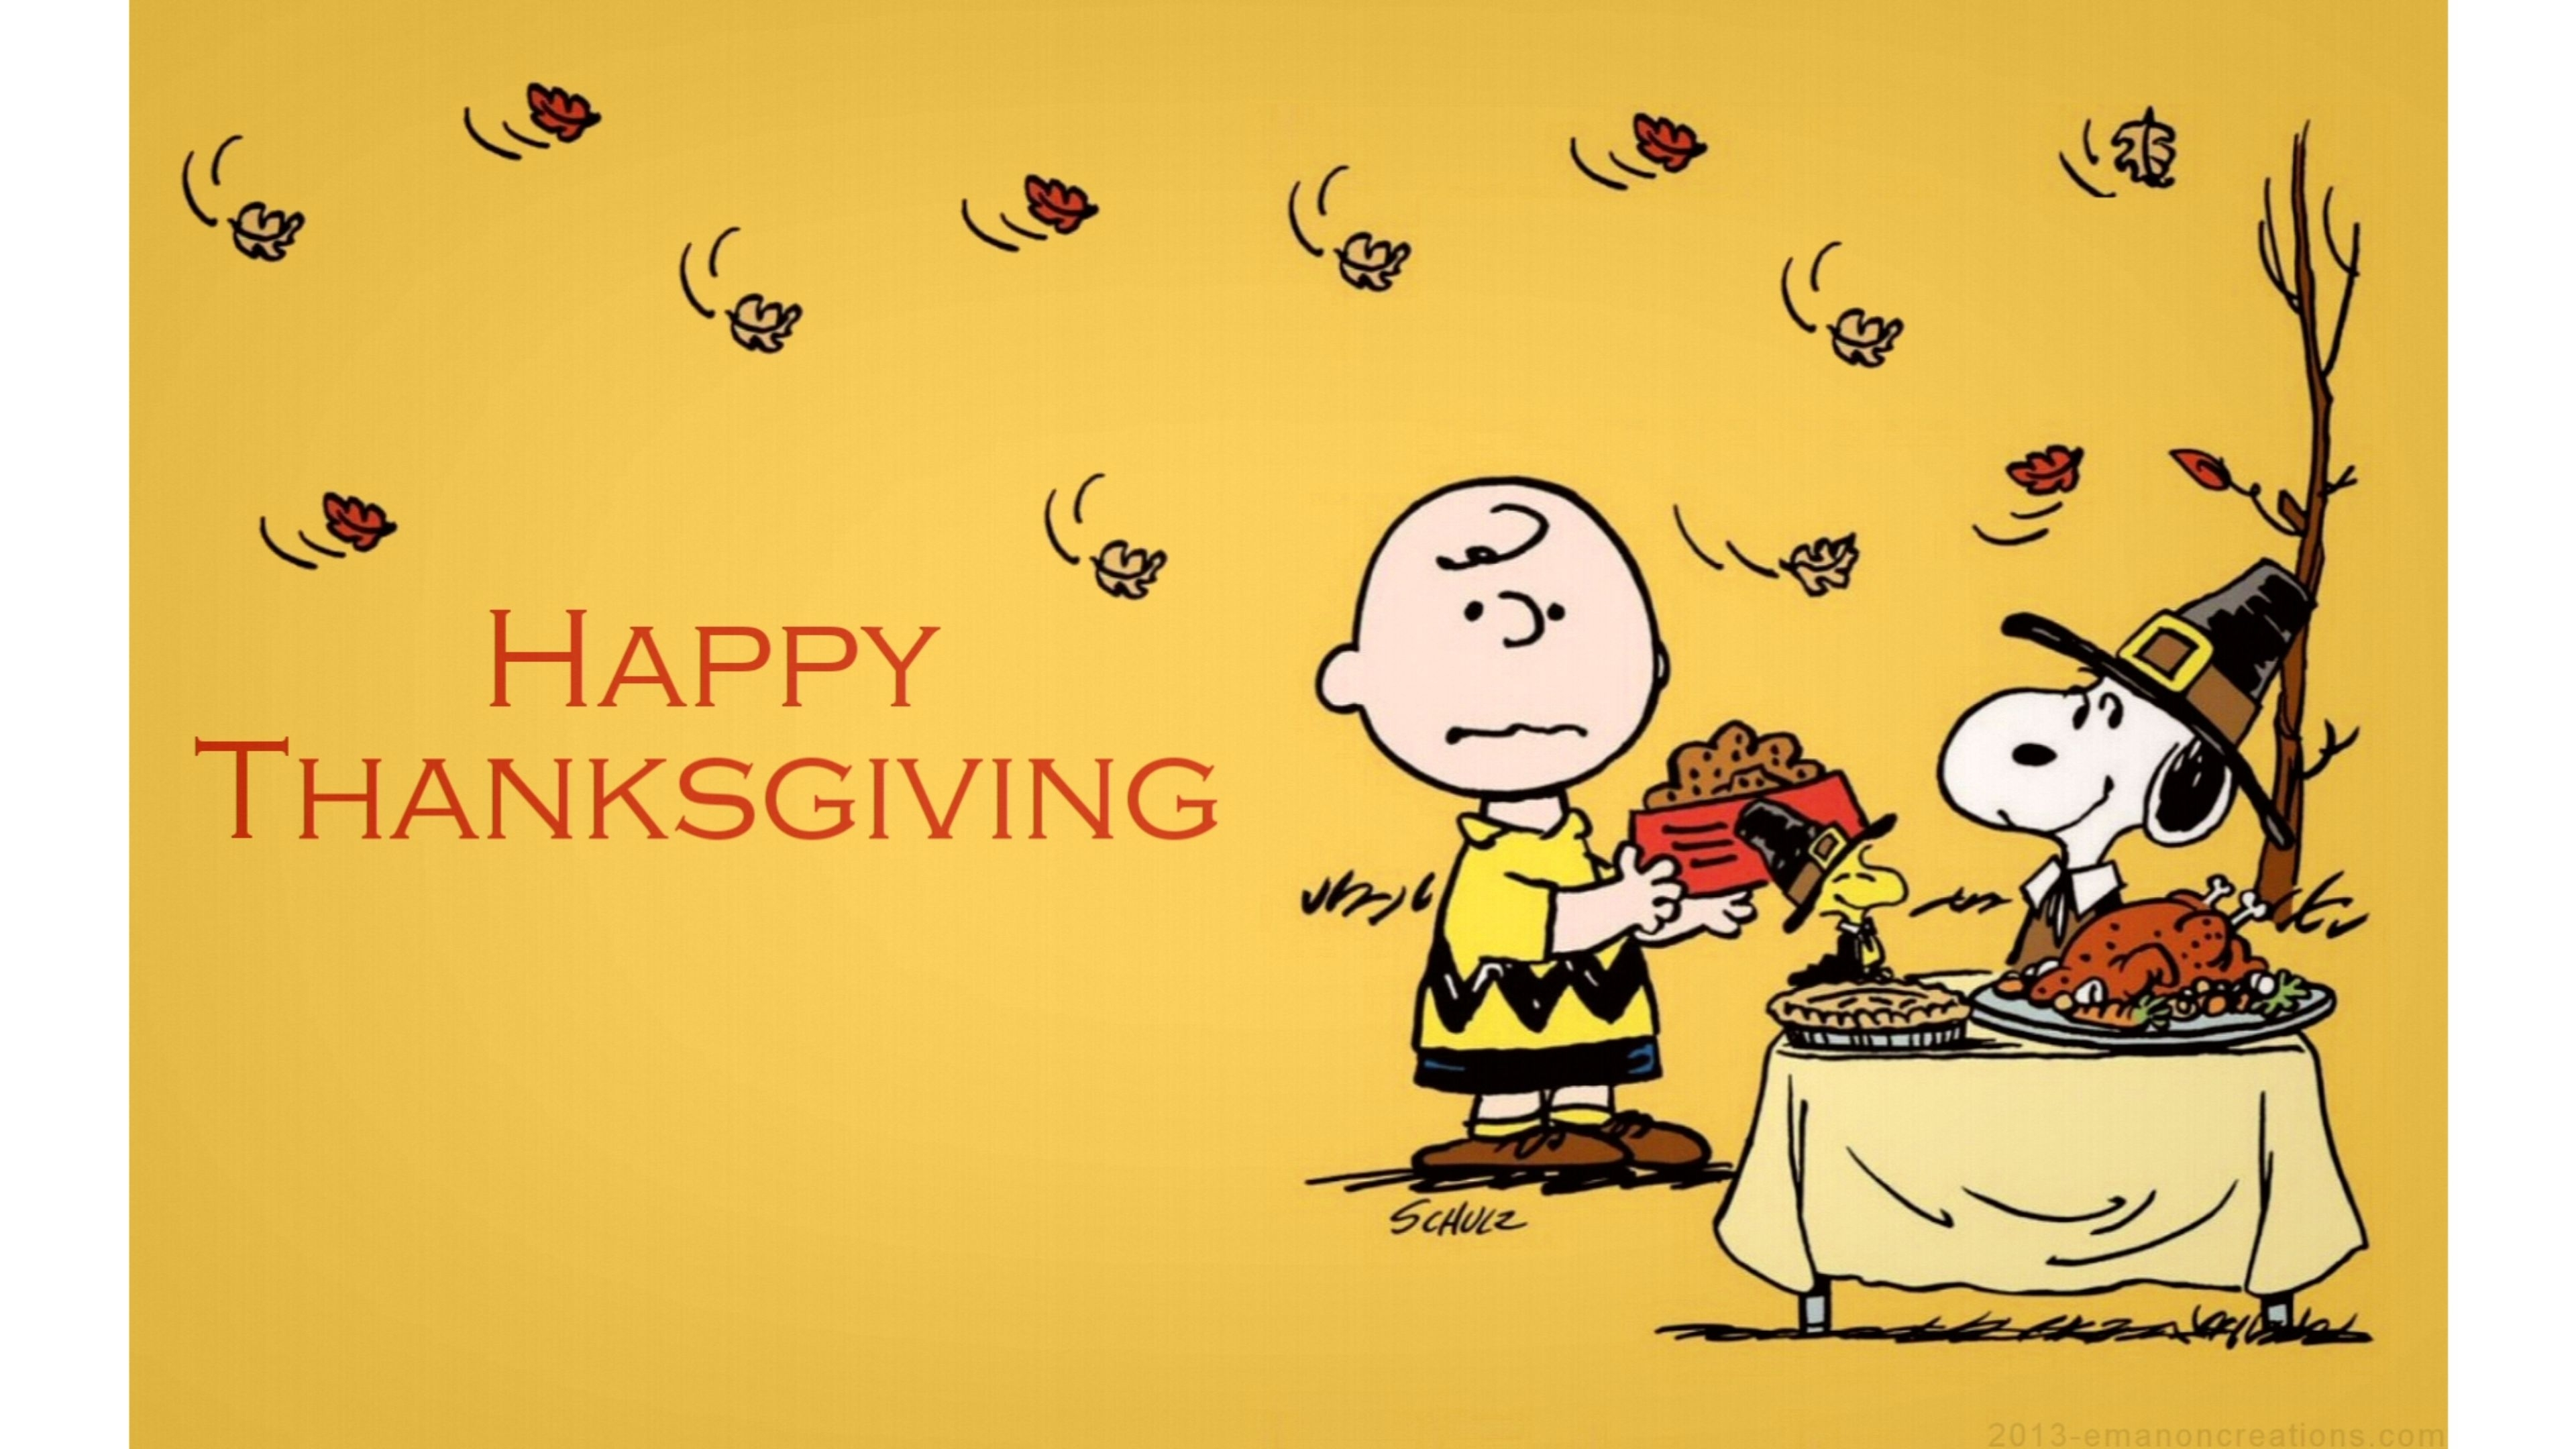 10 Latest Happy Thanksgiving Charlie Brown Wallpaper FULL HD 1920×1080 For PC Background